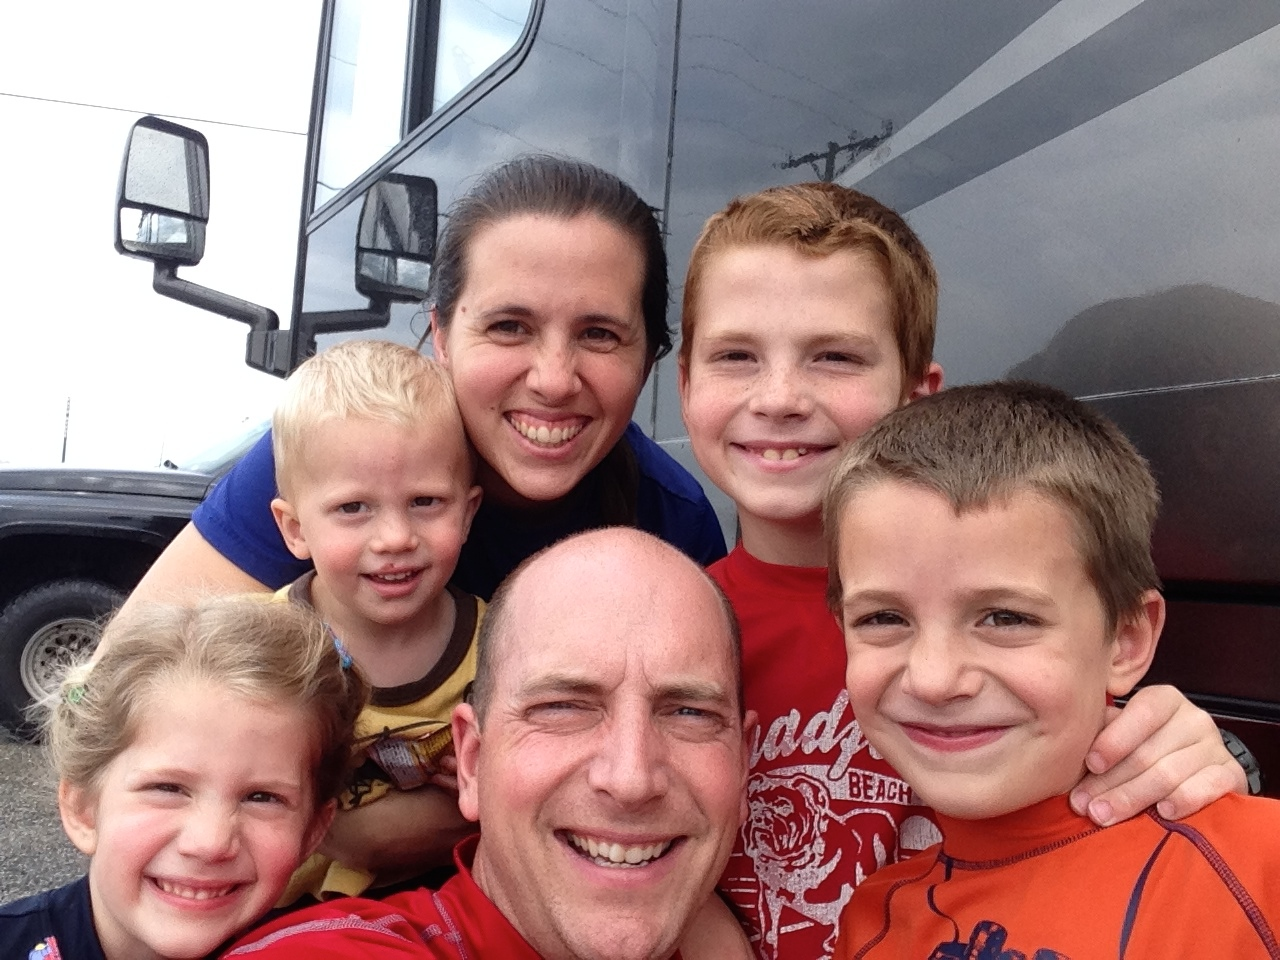 Our first trip in the motorhome!